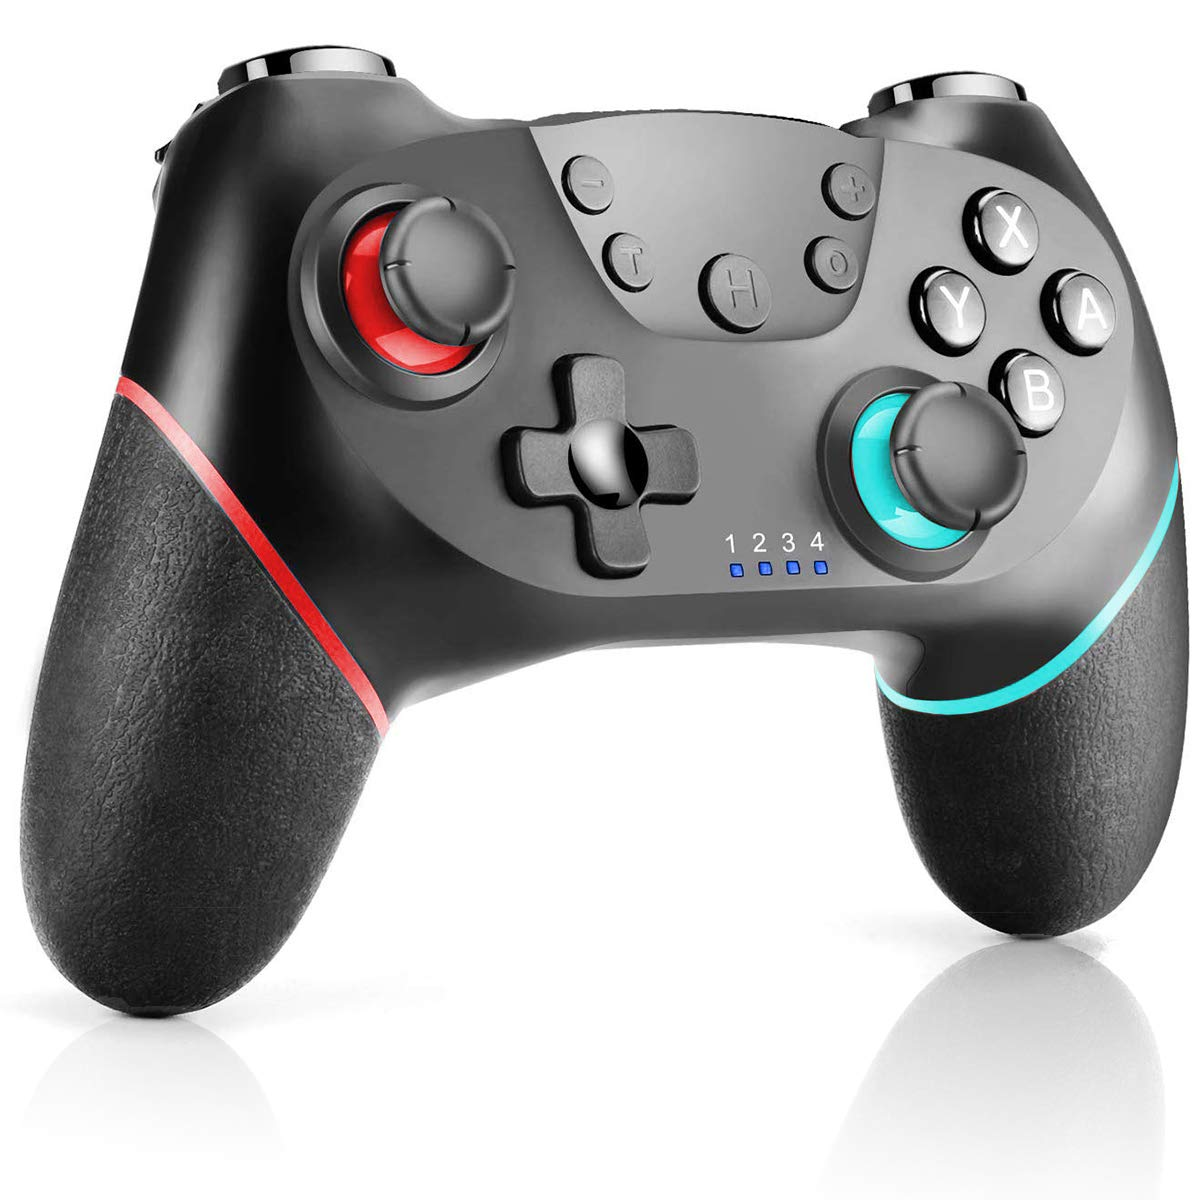 CHEREEKI Manette pour Nintendo Switch, Manette Pro Switch sans Fil avec Bluetooth / Gyro Axis Double Moteur Turbo (Rouge-Bleu)